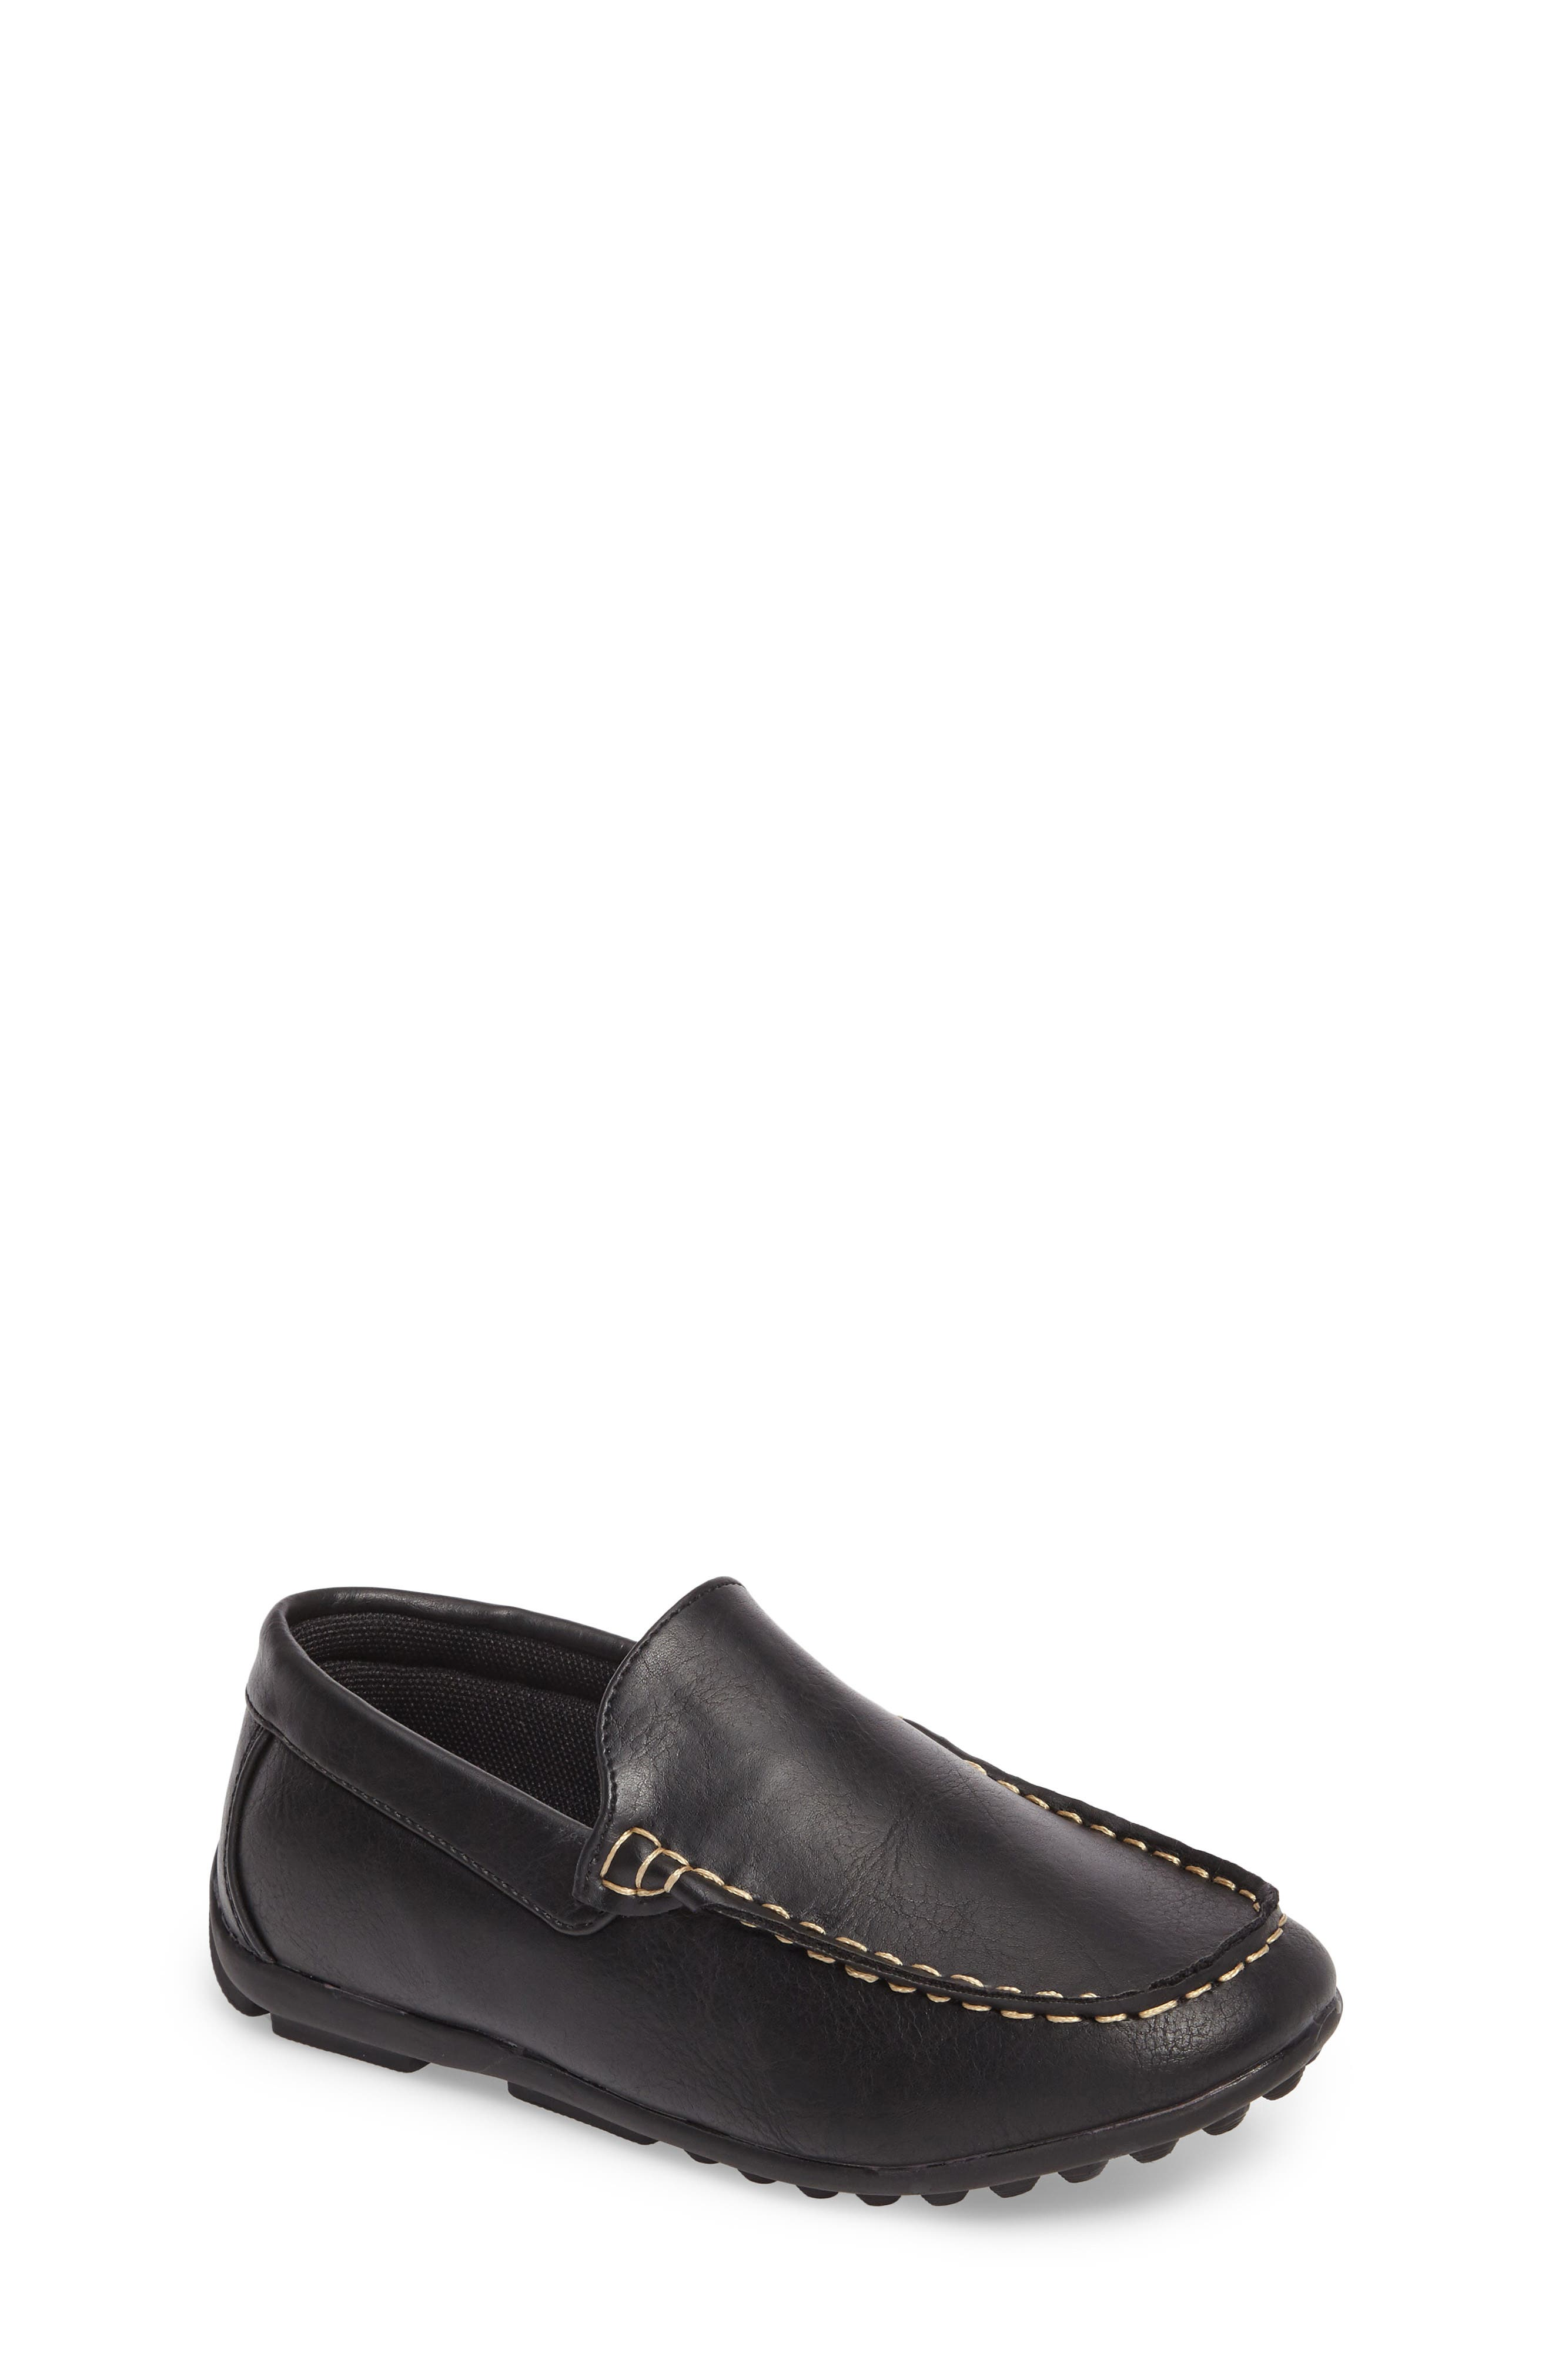 Compton Driving Loafer,                             Main thumbnail 1, color,                             BLACK